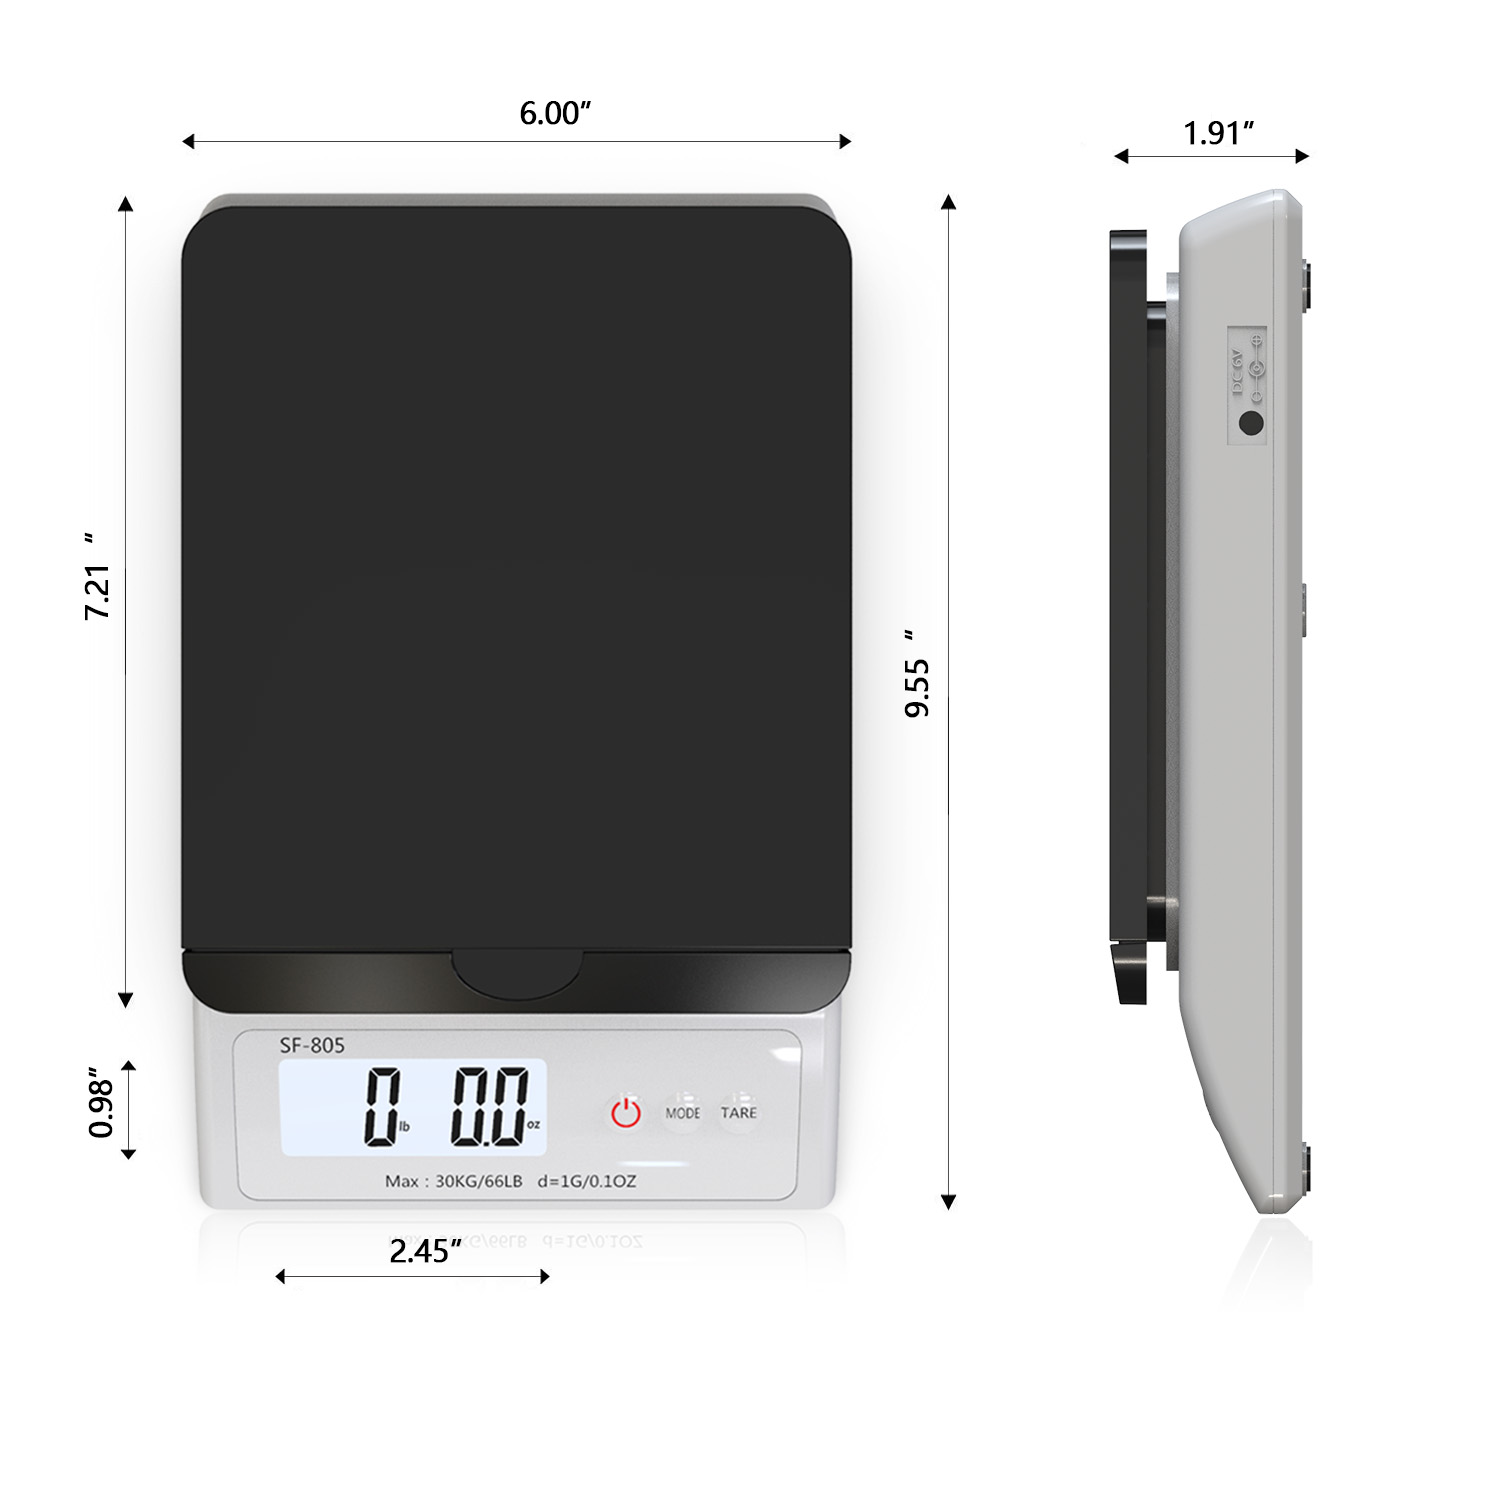 SF-805 2020 new product weight scale electronic balance for parcel mail weighing